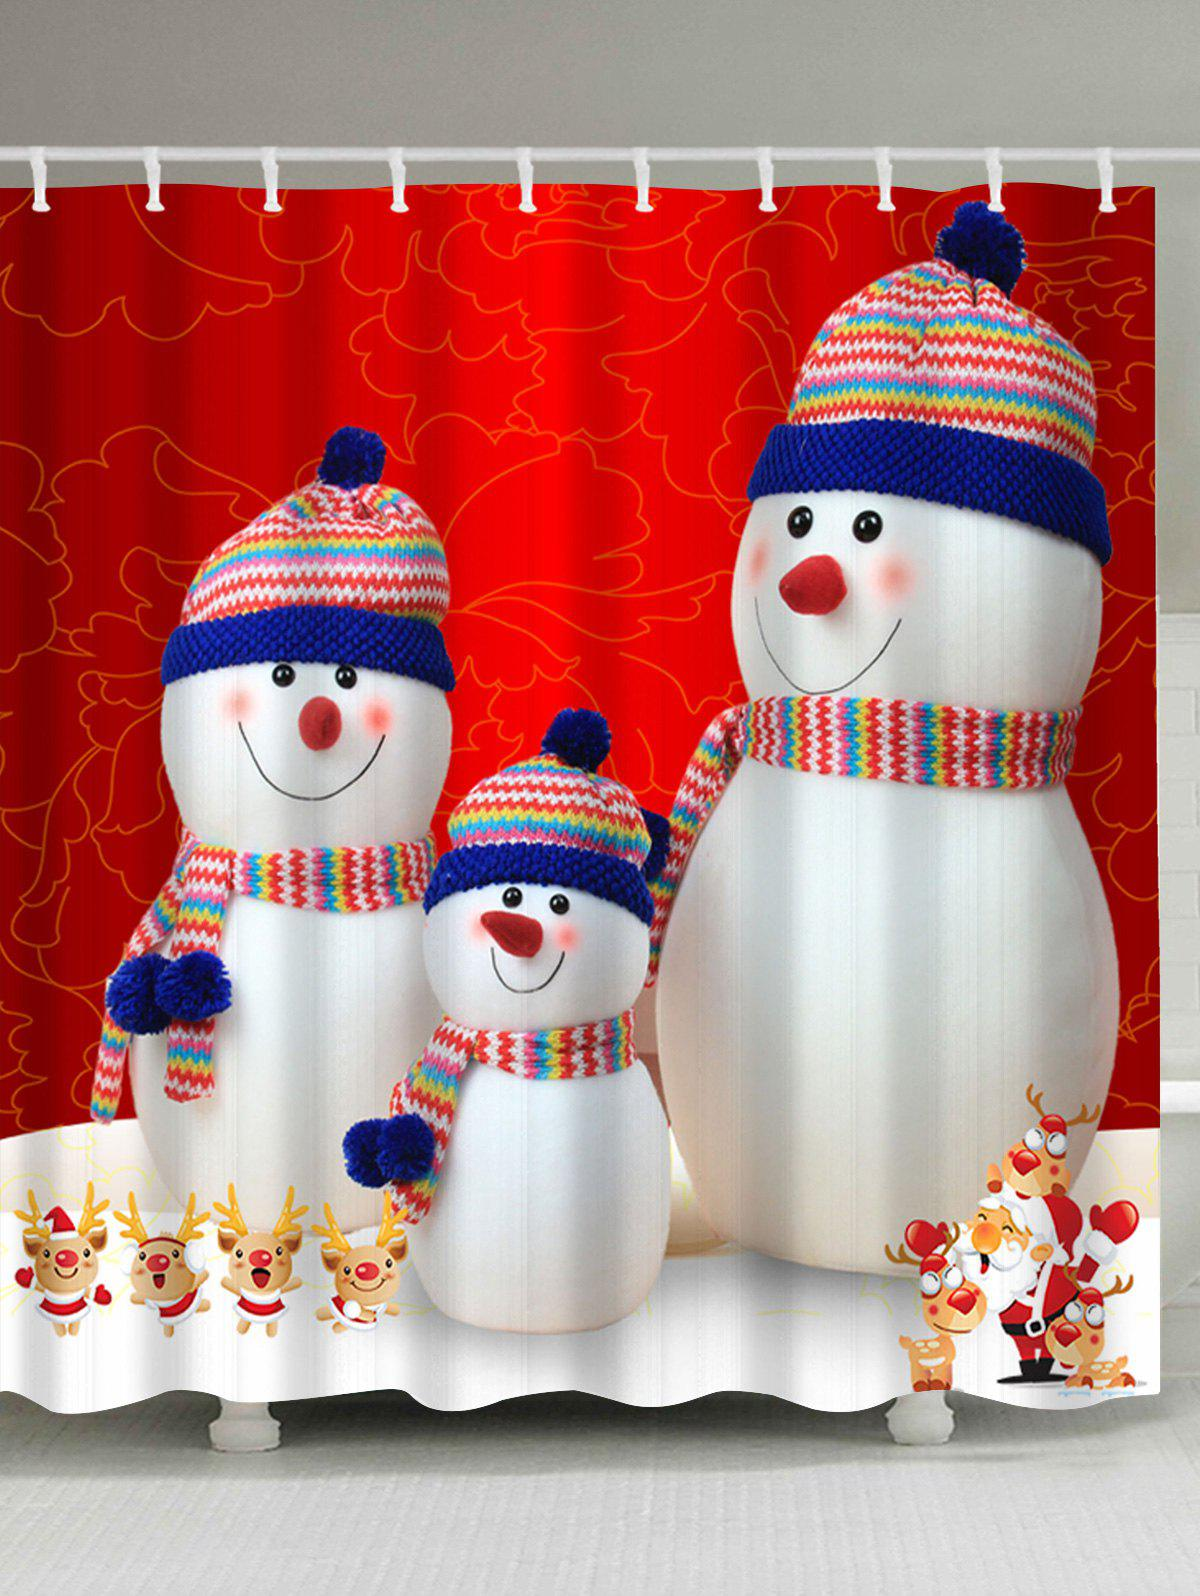 Christmas Snowman Family Waterproof Polyester Shower CurtainHOME<br><br>Size: W59 INCH * L71 INCH; Color: COLORMIX; Products Type: Shower Curtains; Materials: Polyester; Pattern: Snowman; Style: Festival; Number of Hook Holes: W59 inch*L71 inch: 10; W71 inch*L71 inch: 12; W71 inch*L79 inch: 12; Package Contents: 1 x Shower Curtain 1 x Hooks (Set);